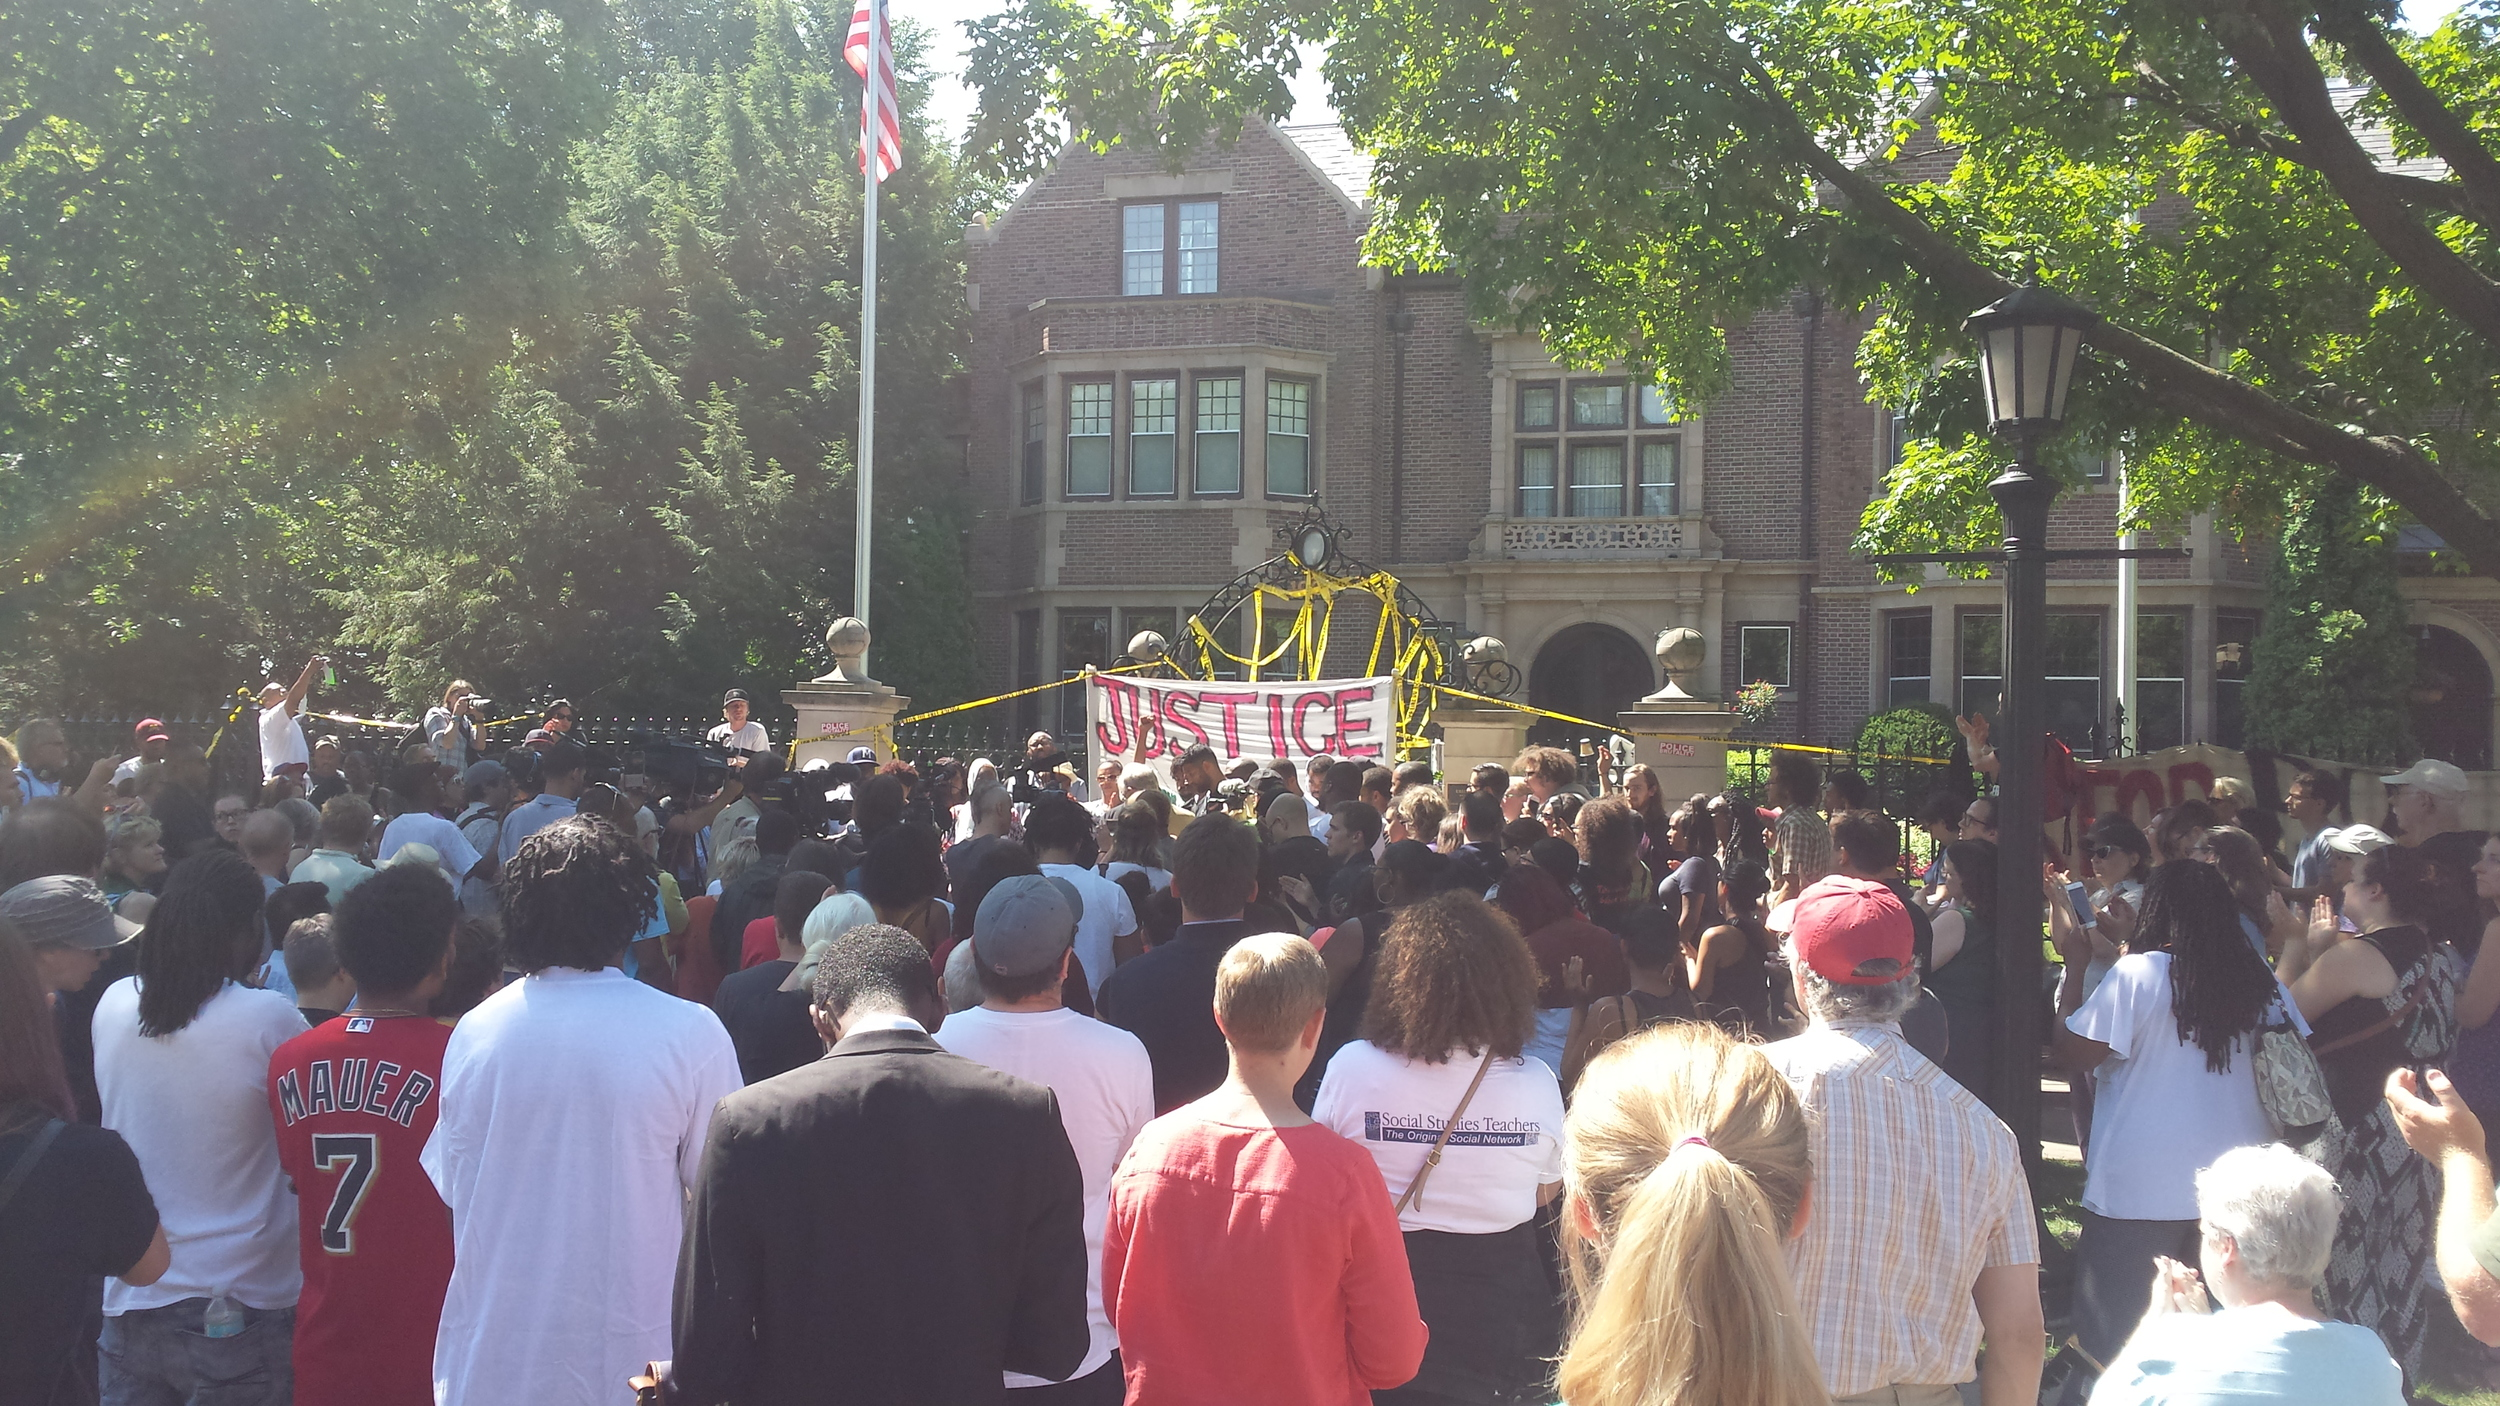 Crowds form outside of governor's mansion.